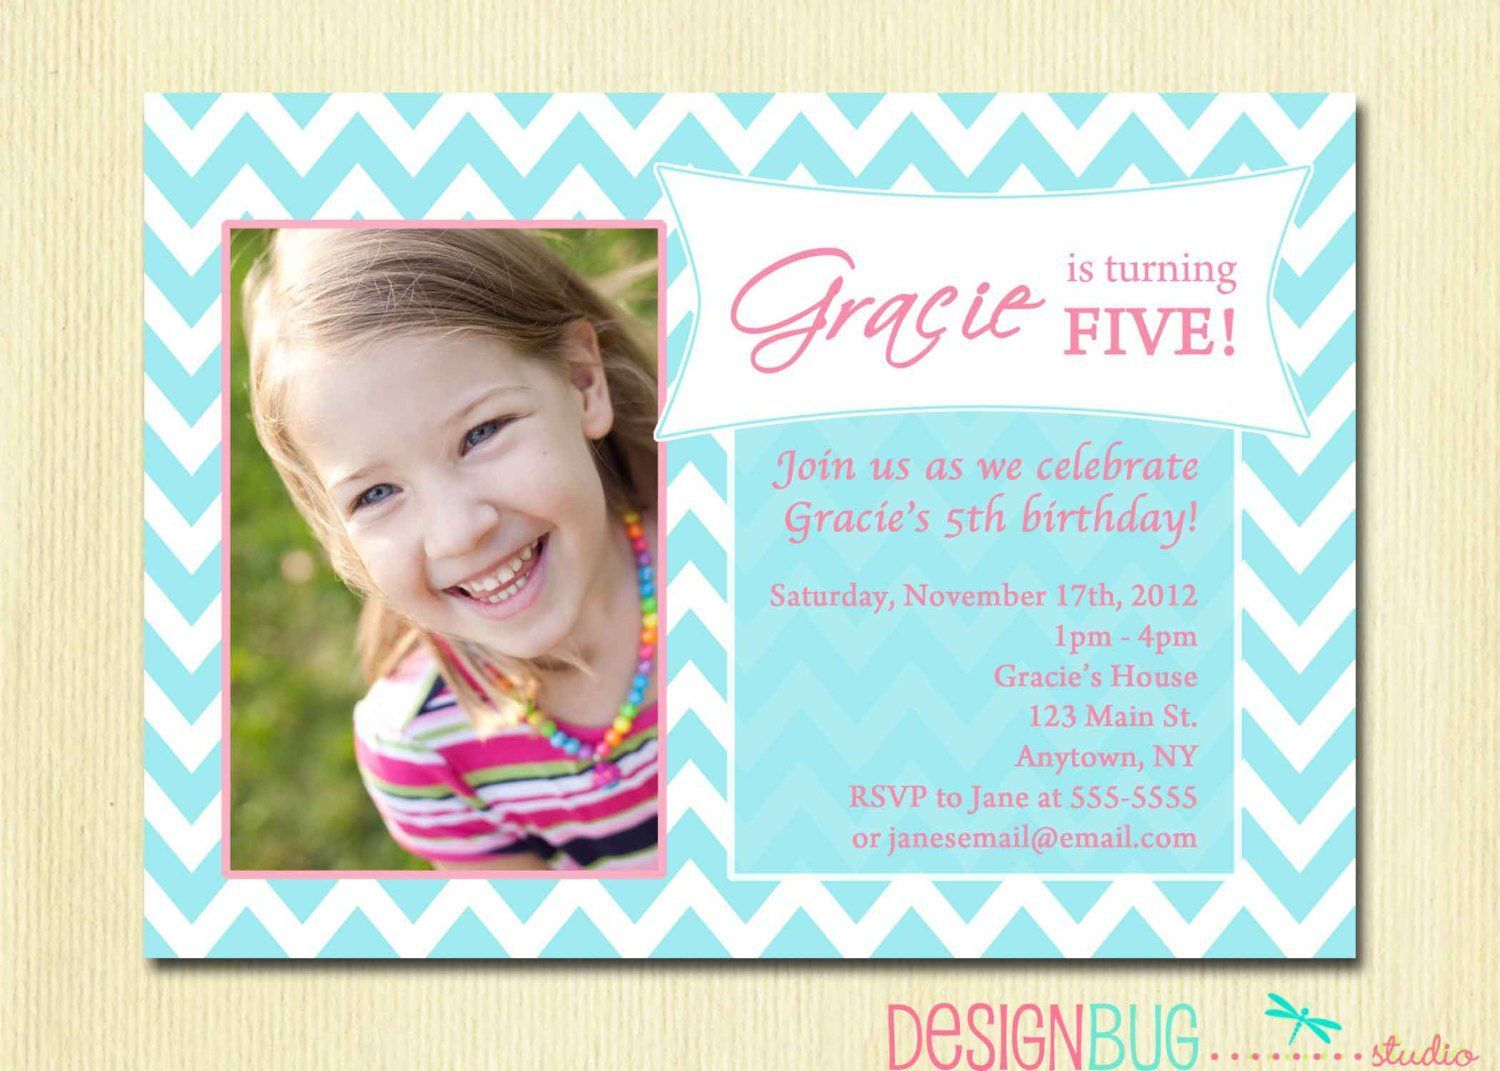 7 Year Old Birthday Invitation Wording Check More At Lolsurprisedollinvitations